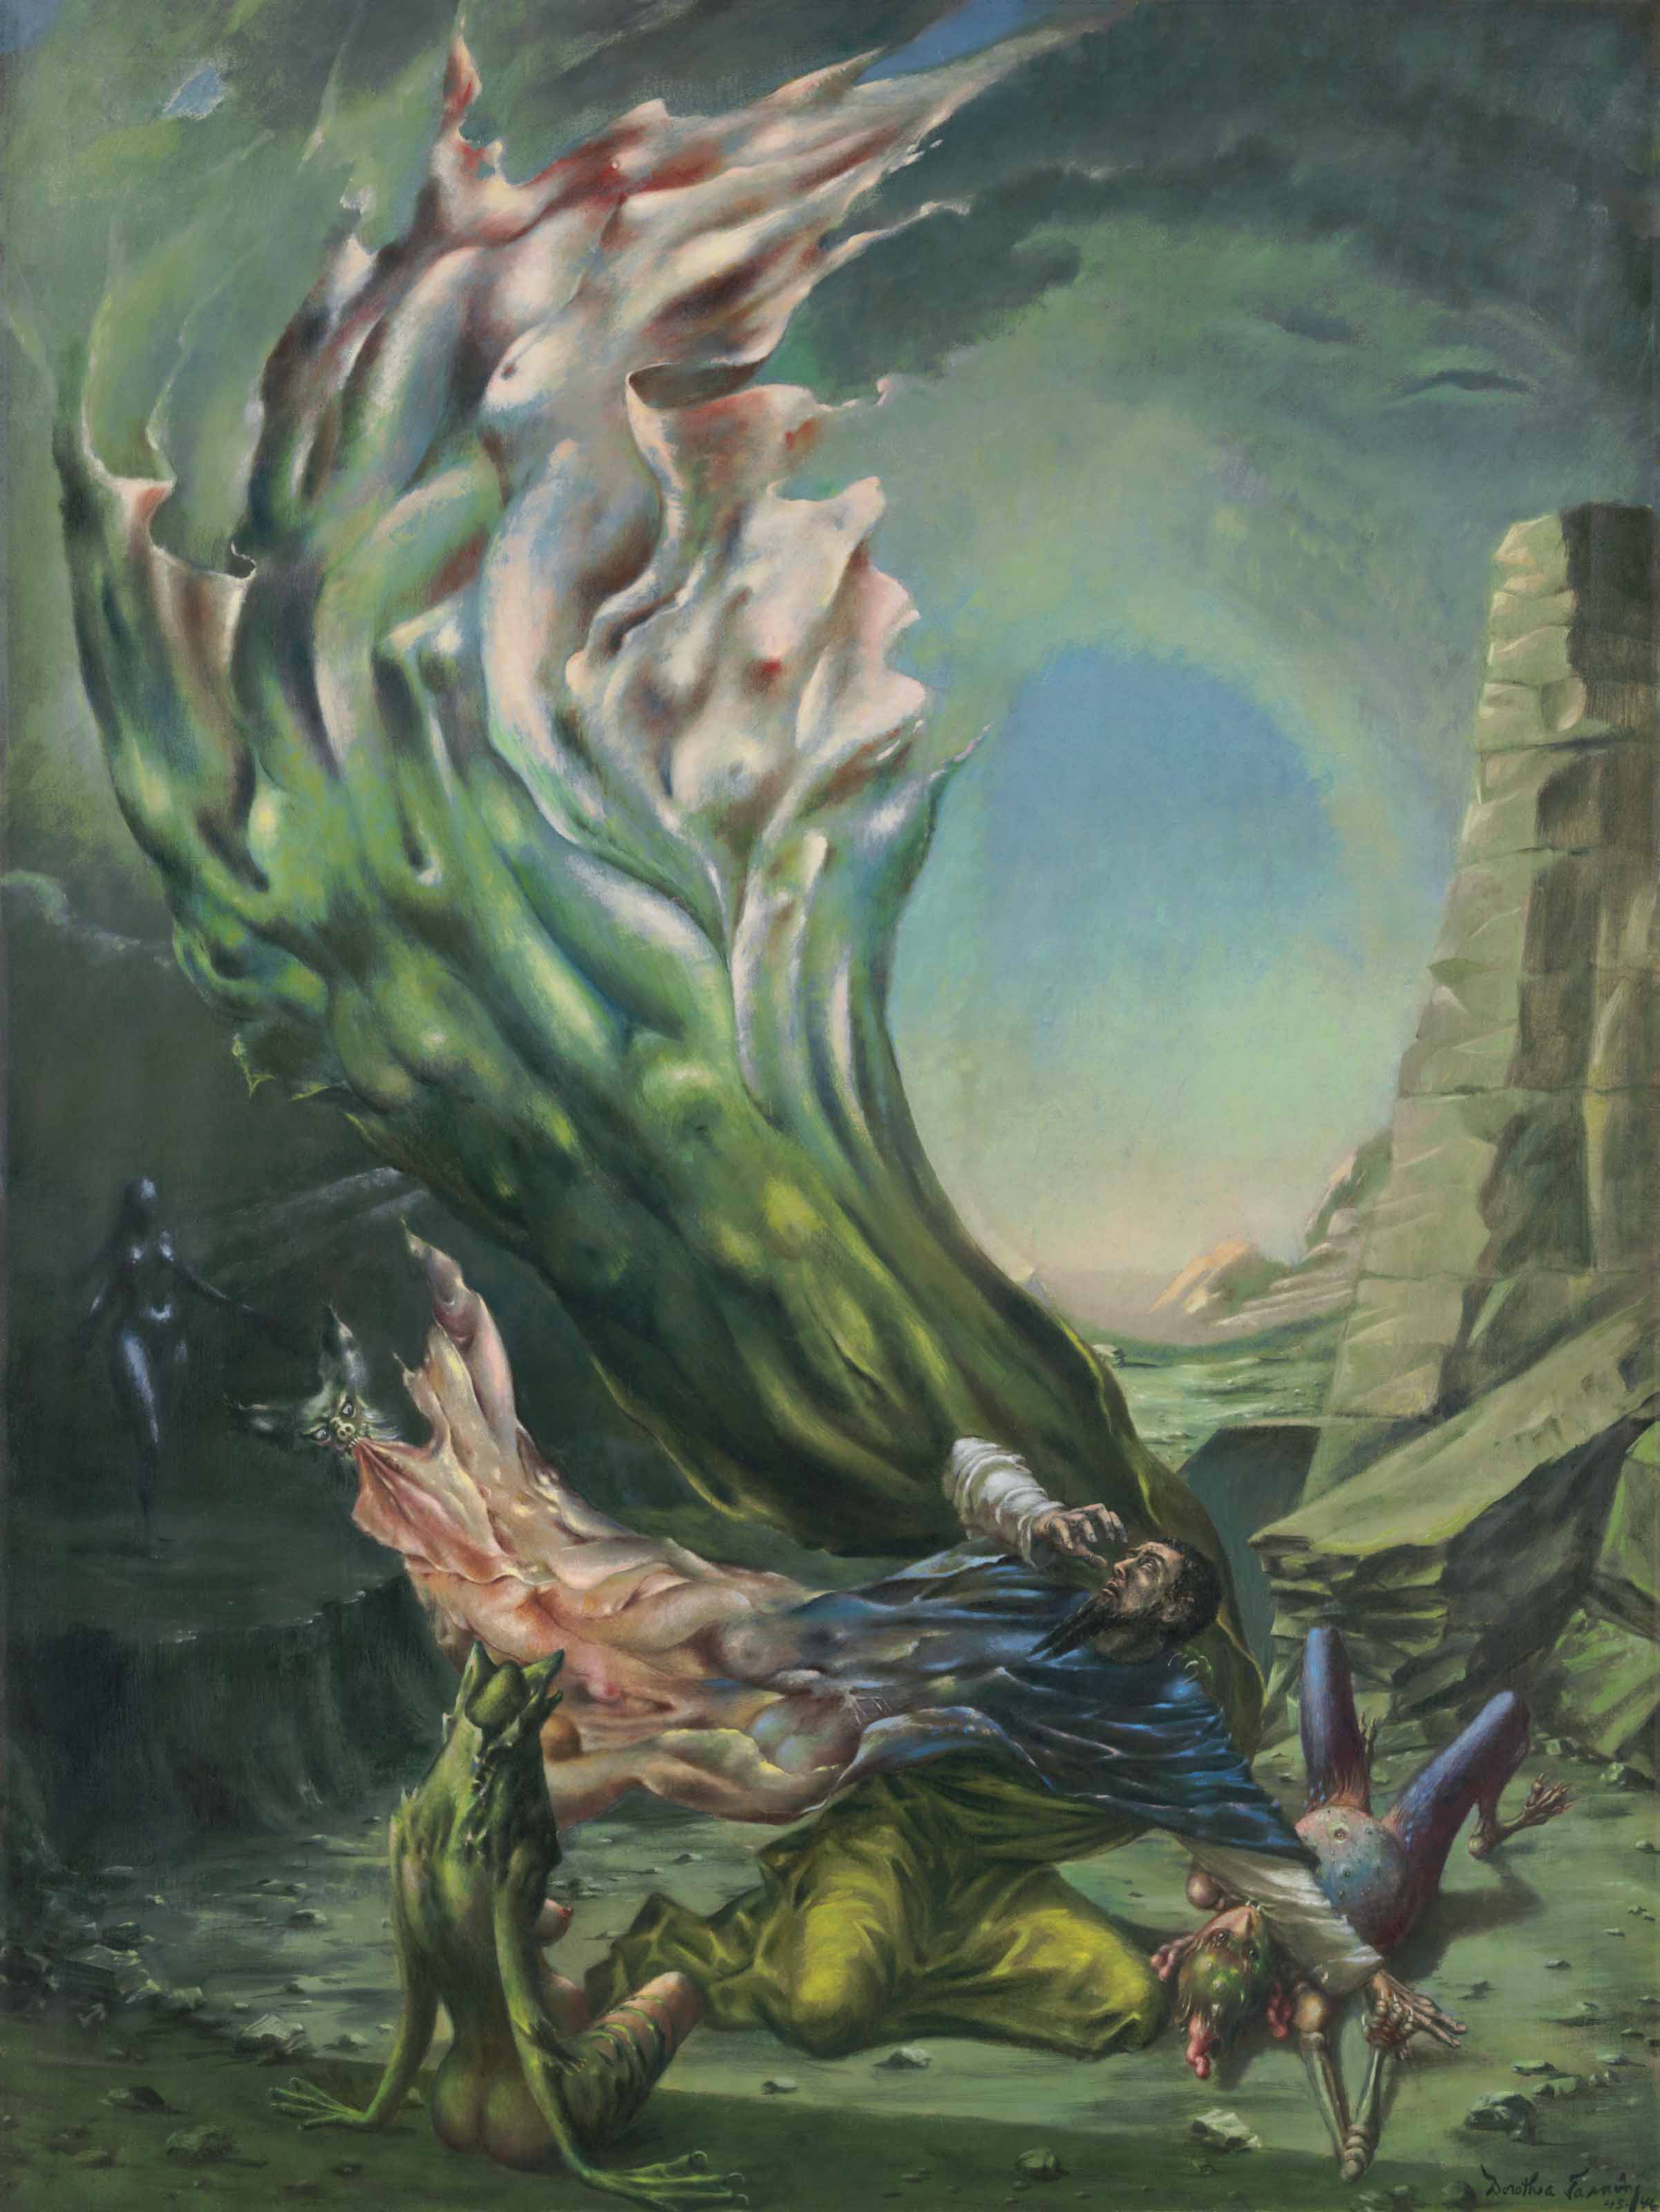 The Temptation of St. Anthony a painting by Dorothea Tanning